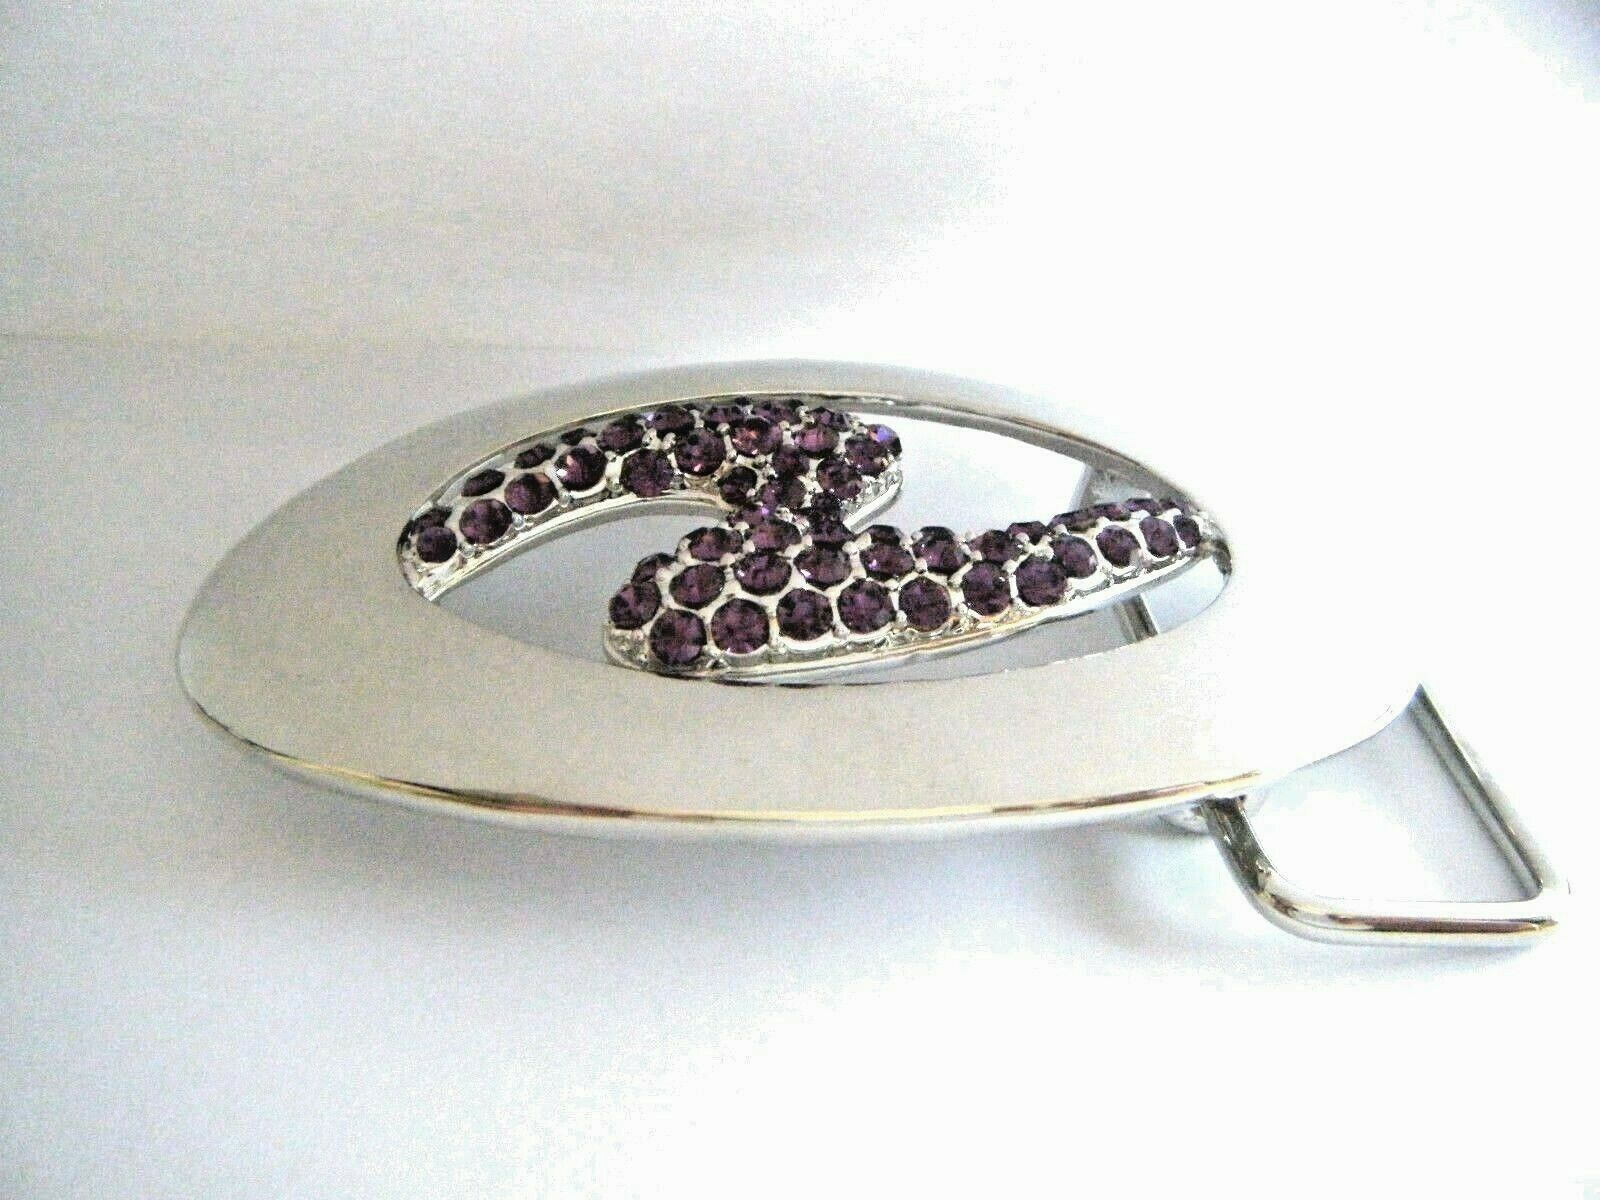 Oval Silver Tone Metal Belt Buckle Contemporary Style Purple Stones New